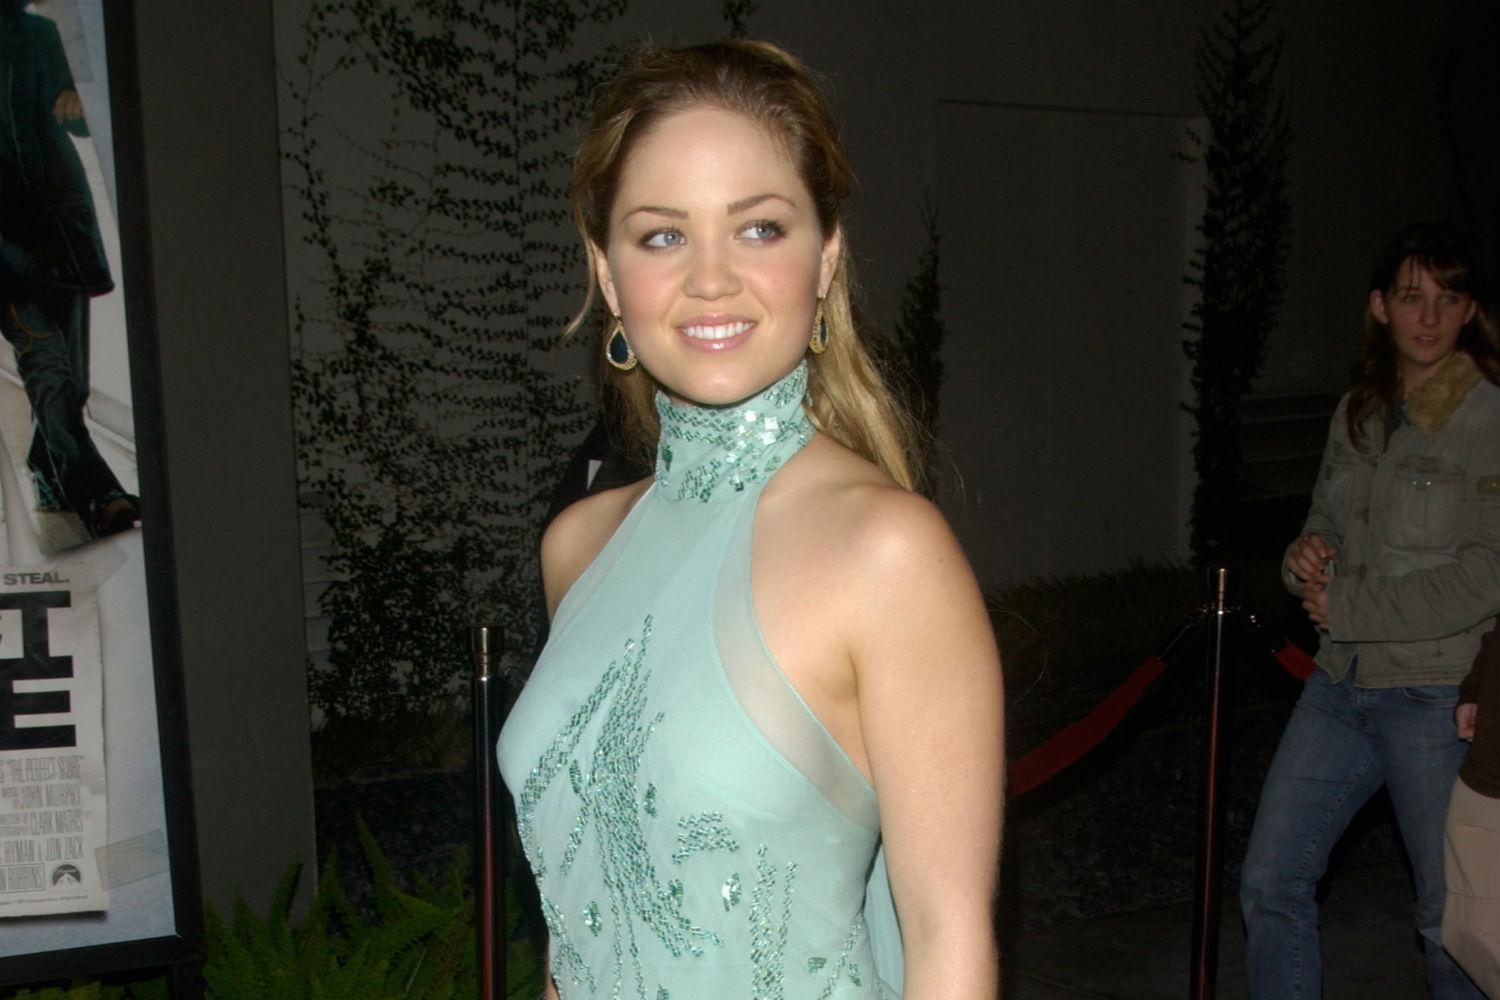 Parenthood S Erika Christensen To Star In New Coke Fueled